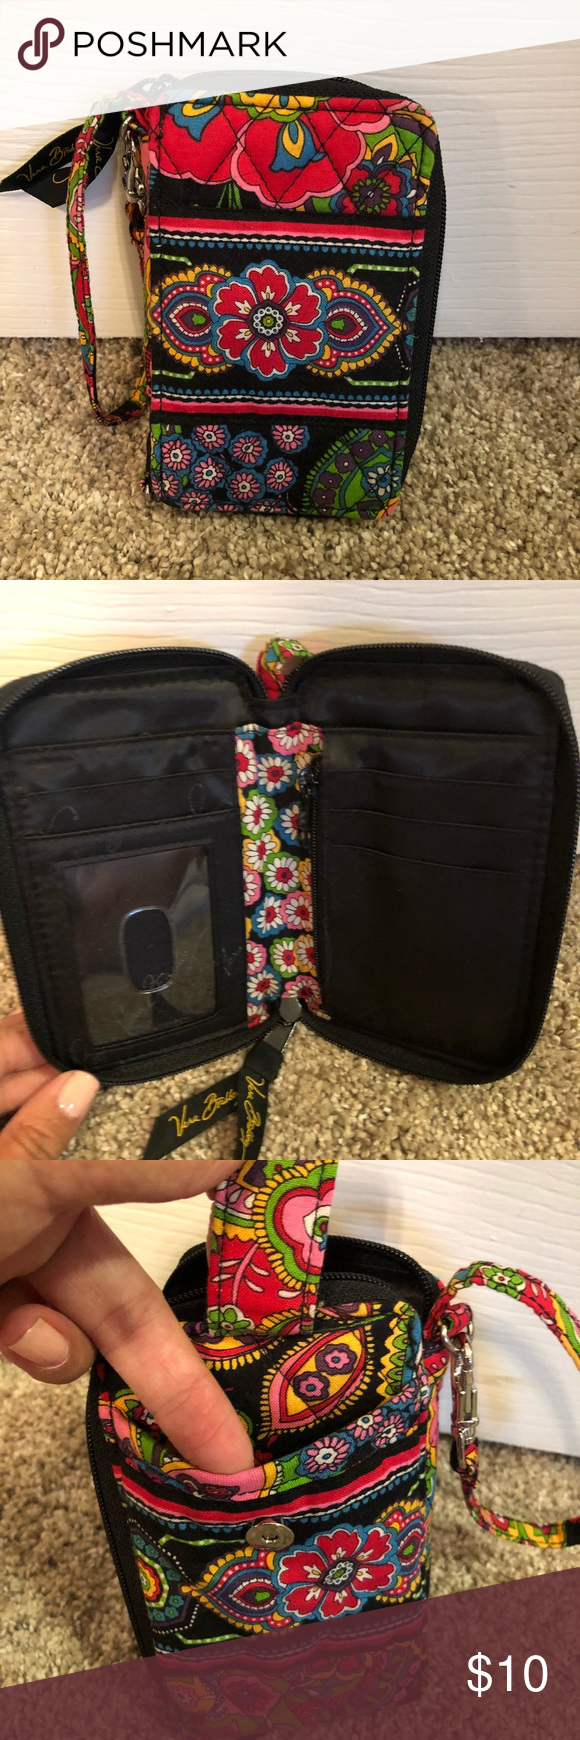 ead016fd868e Vera Bradley Wristlet Wallet Wristlet that when opened is a wallet. Holds  cards